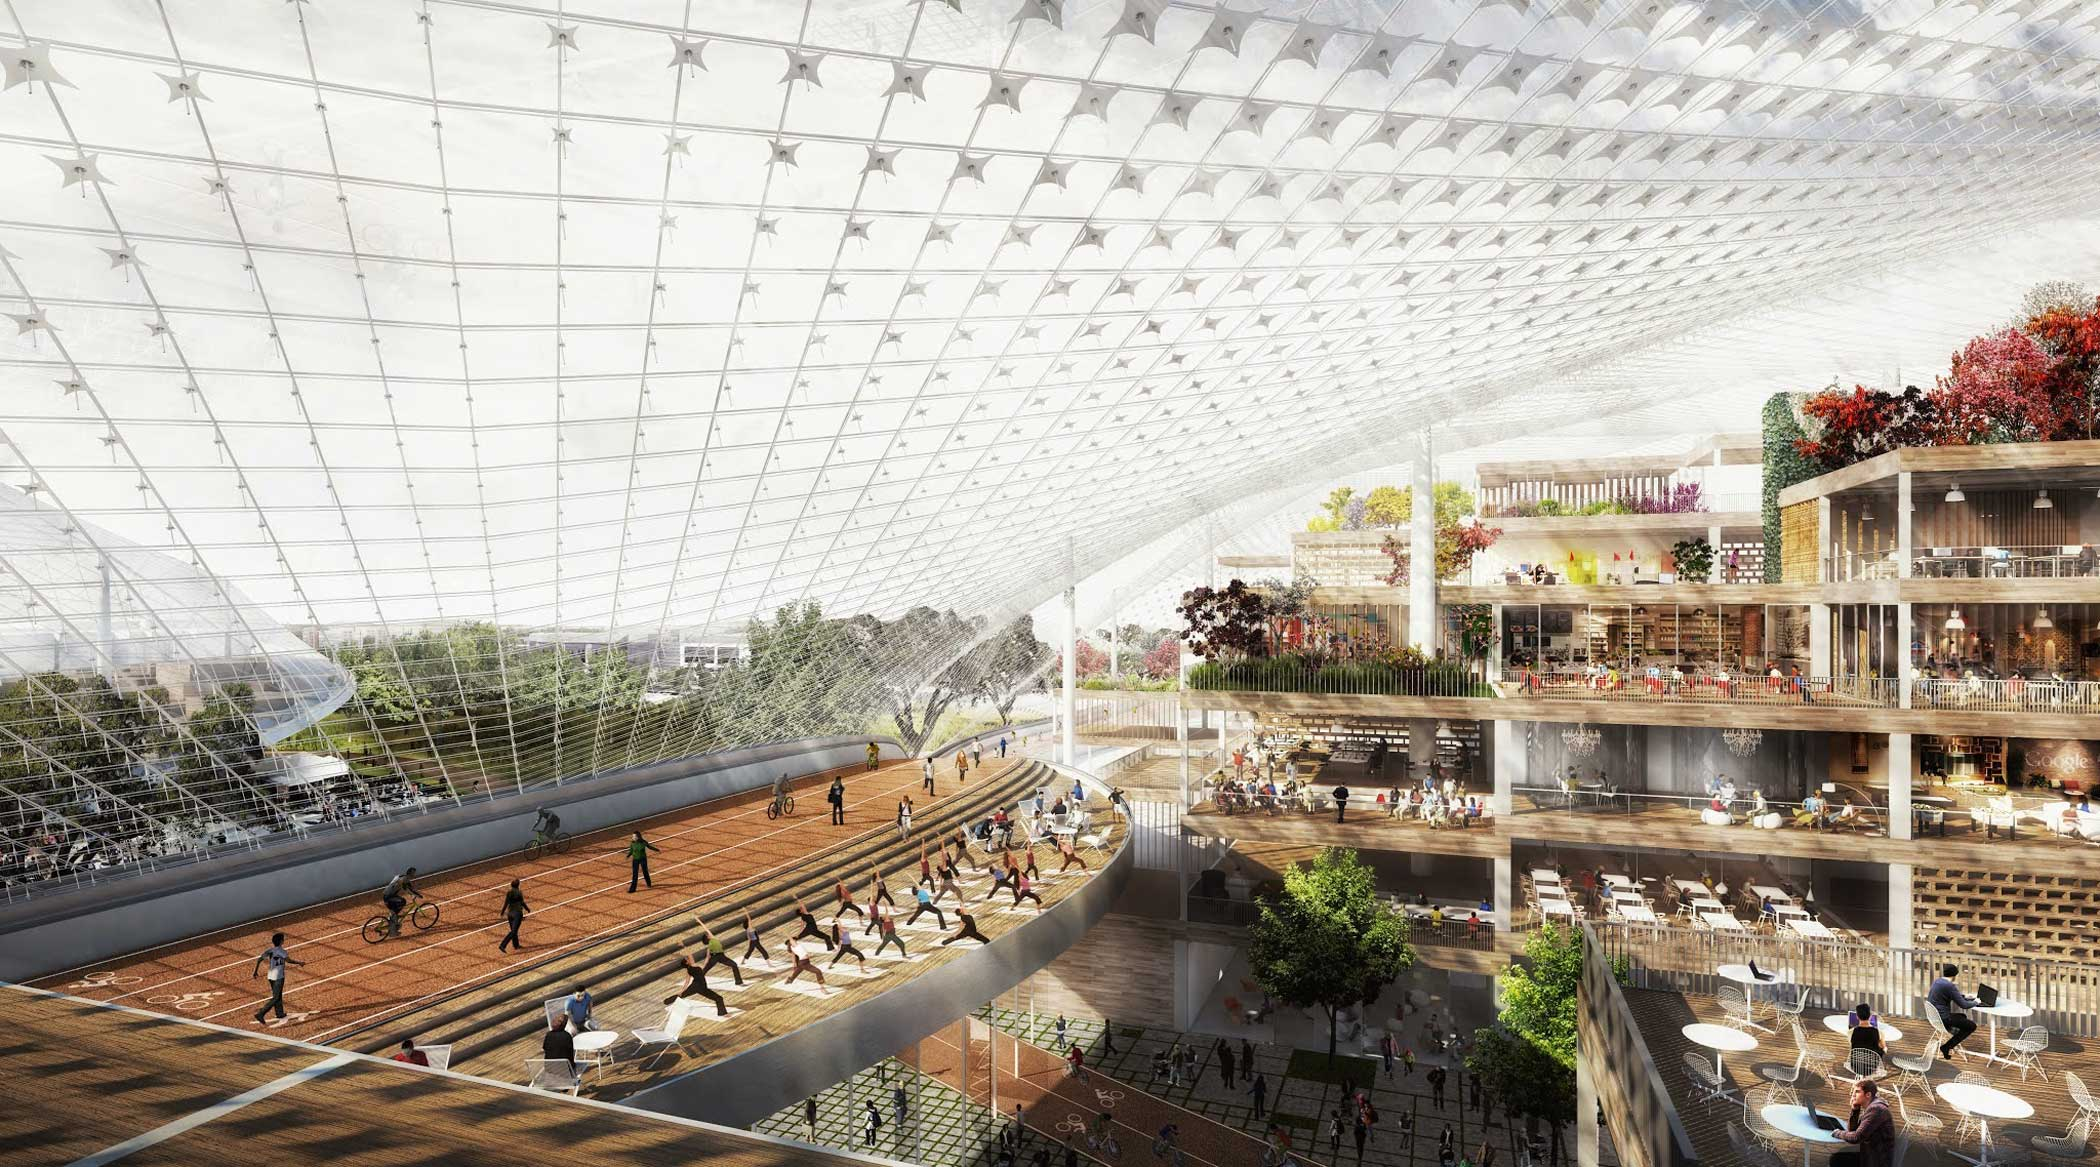 This rendering shows the inside of the proposed Charleston South building looking west.                                                                      Within the canopy, building segments operate like furniture—light, tactile and reconfigurable. These segments form small villages where employees can work or relax.                                                                      The Green Loop goes through the building. The rim of the canopy provides structure as well as biking and walking paths.